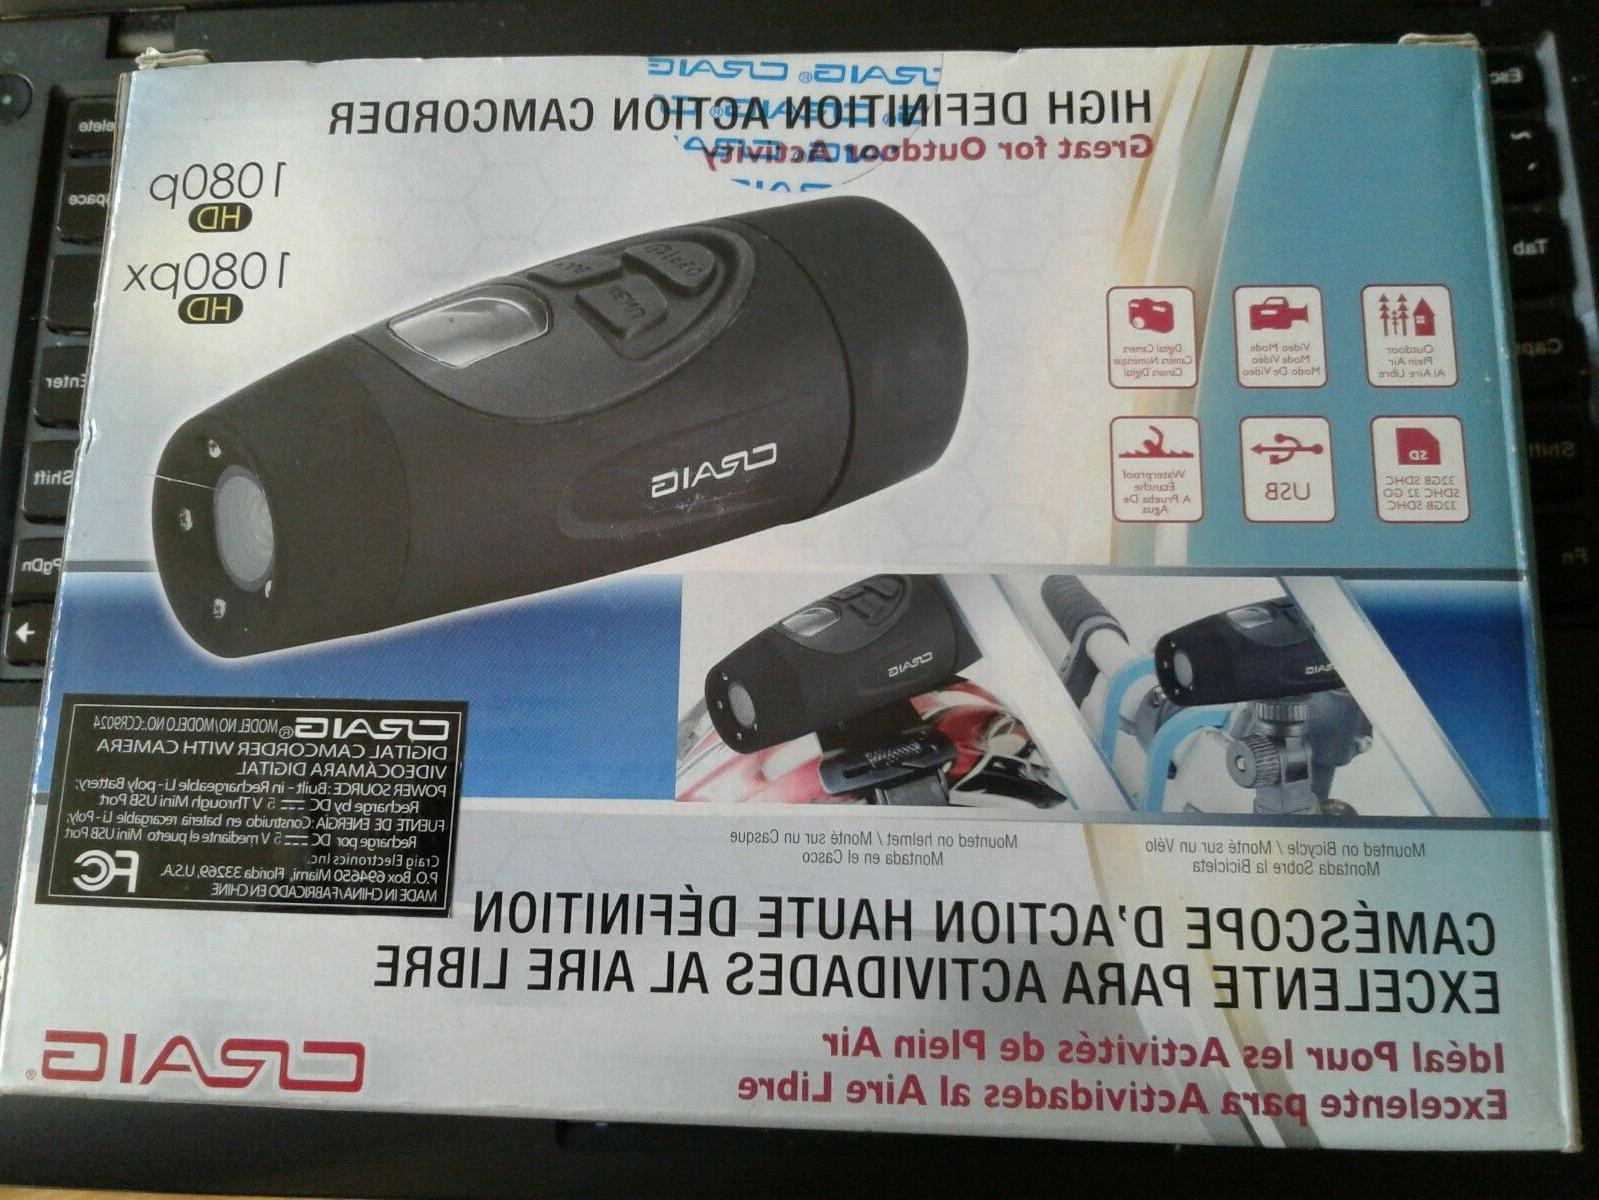 Craig Electronics 1080P HD Action Camcorder, Black